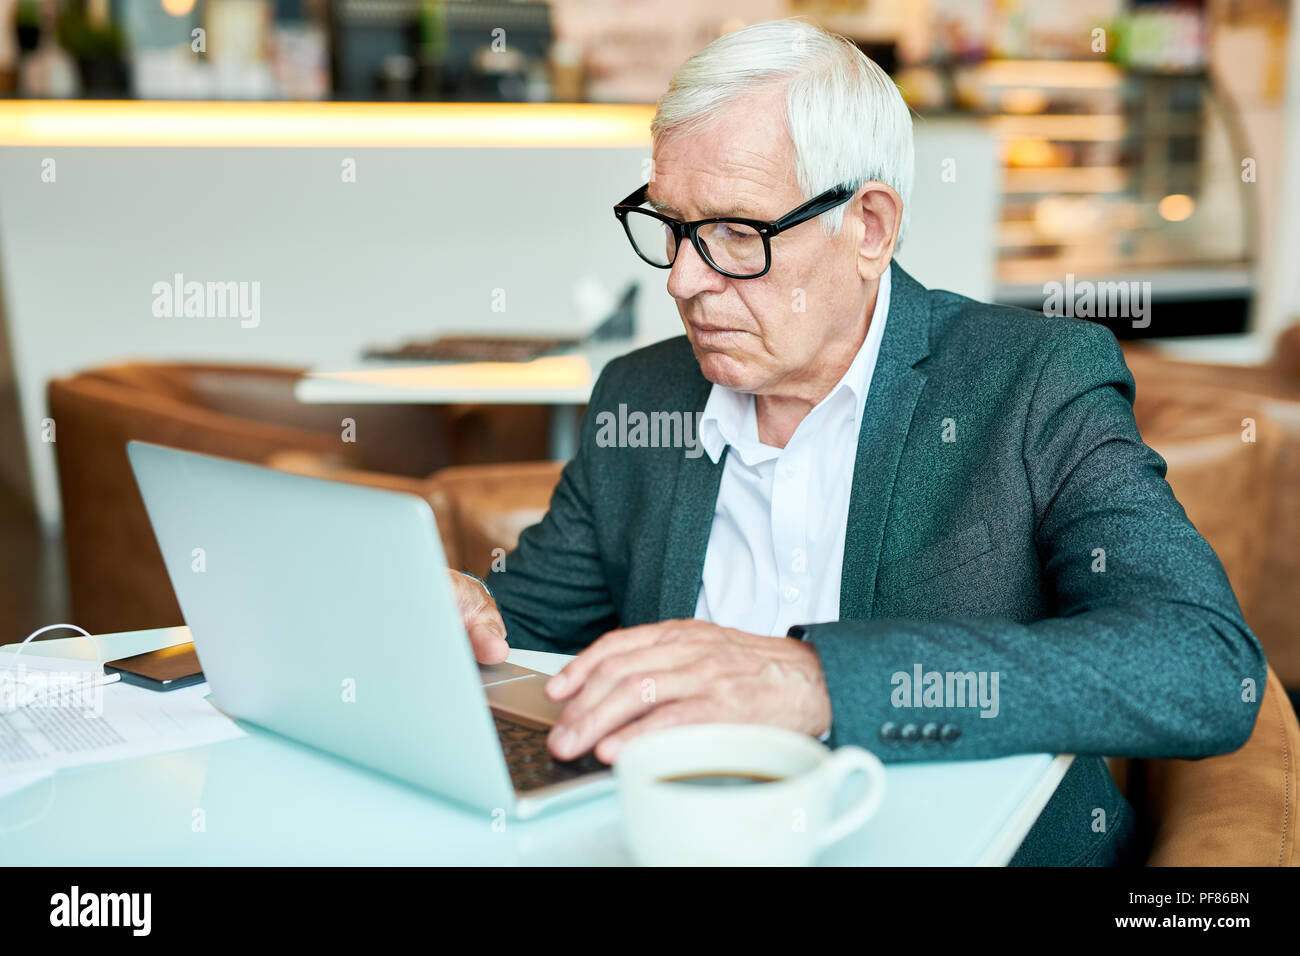 Senior Businessman Using Laptop in Cafe Photo Stock